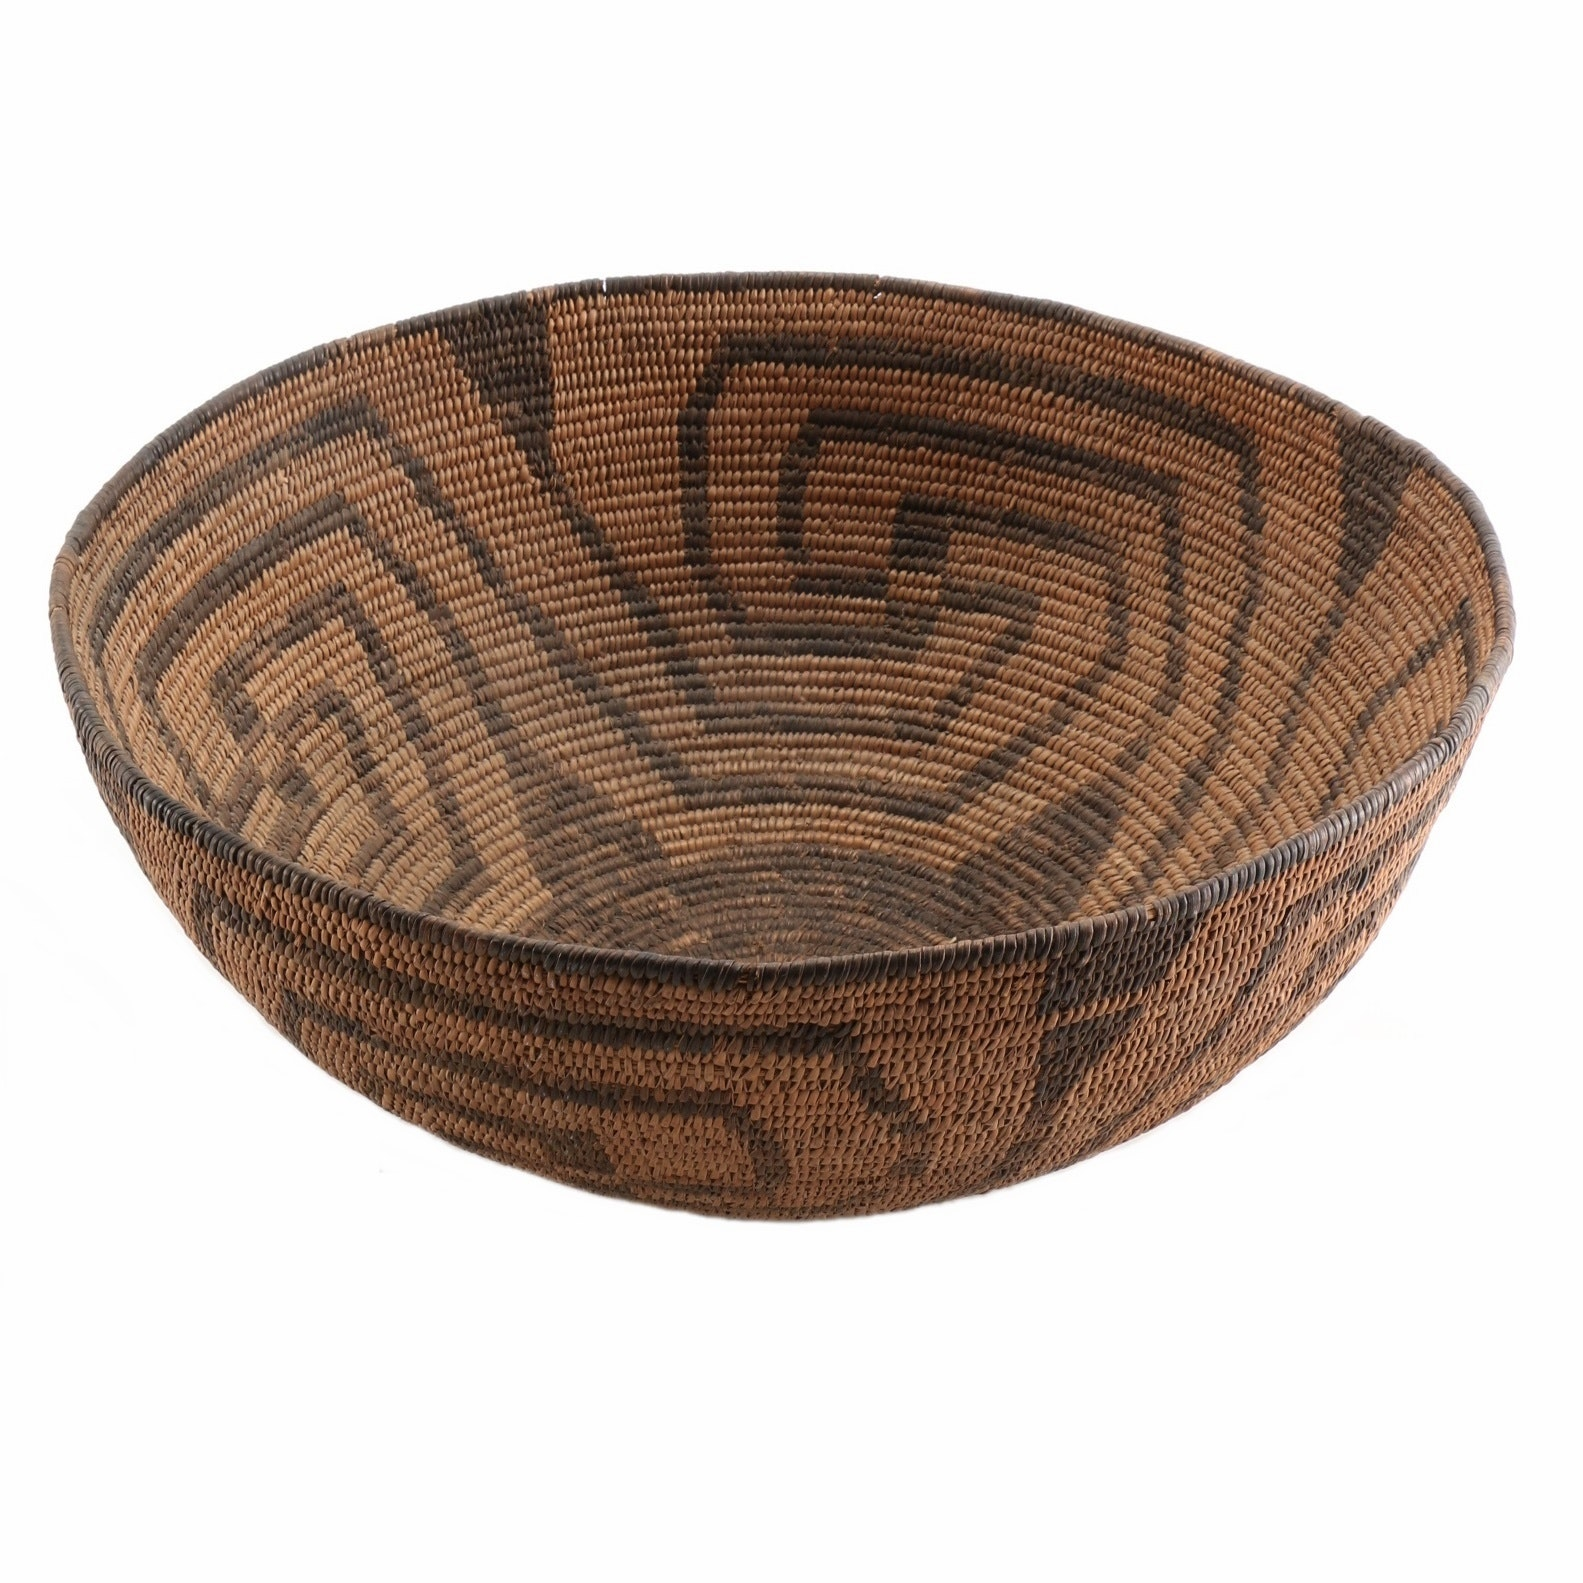 Circa 1900 Large Pima Native American Indian Coiled Basketry Bowl